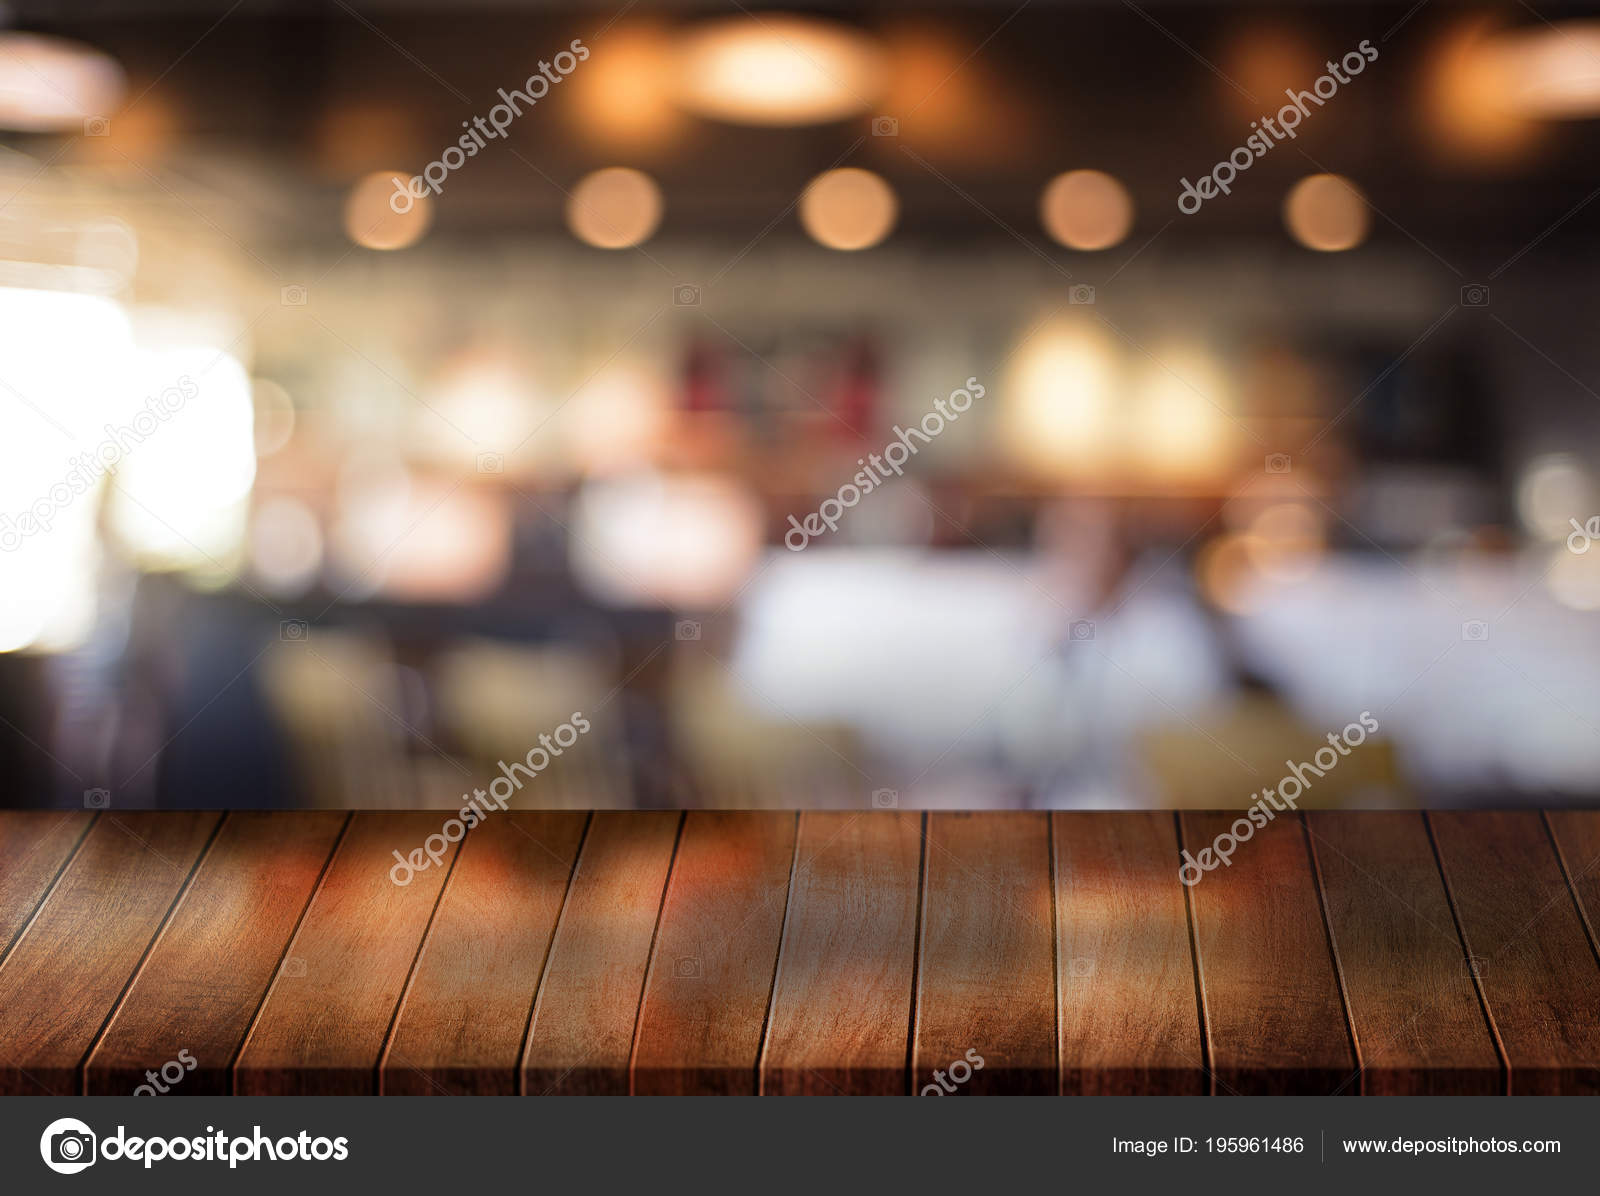 Wooden Board Empty Table Cafe Coffee Shop Bar Blurred Background Stock Photo C Duiwoy 195961486